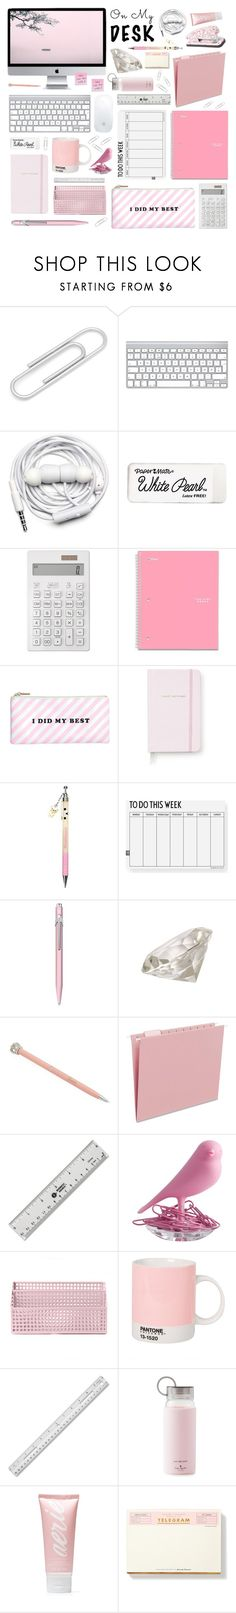 """On My Desk"" by cara-mia-mon-cher ❤ liked on Polyvore featuring interior, interiors, interior design, home, home decor, interior decorating, Ox & Bull Trading Co., Urbanears, Paper Mate and Seed Design"